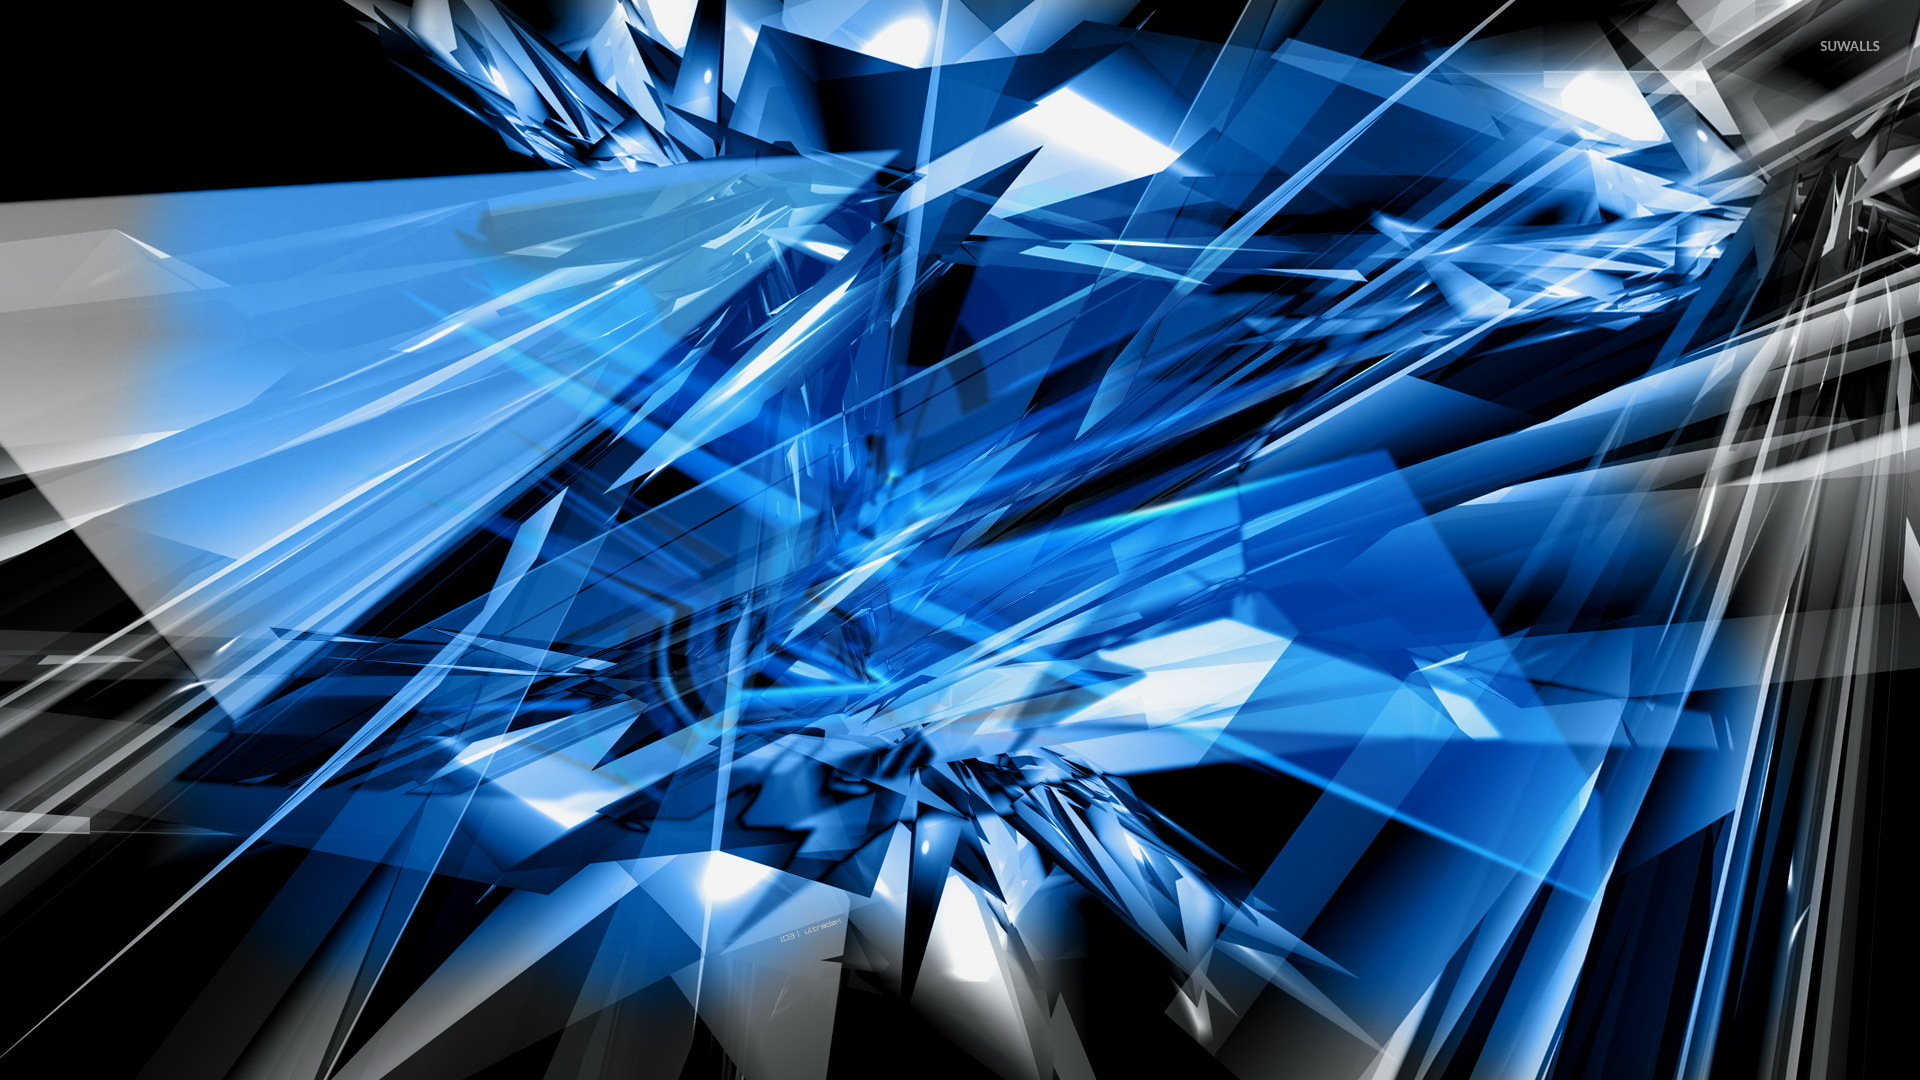 Glass Shards Wallpaper Abstract 1920x1080 Jpg